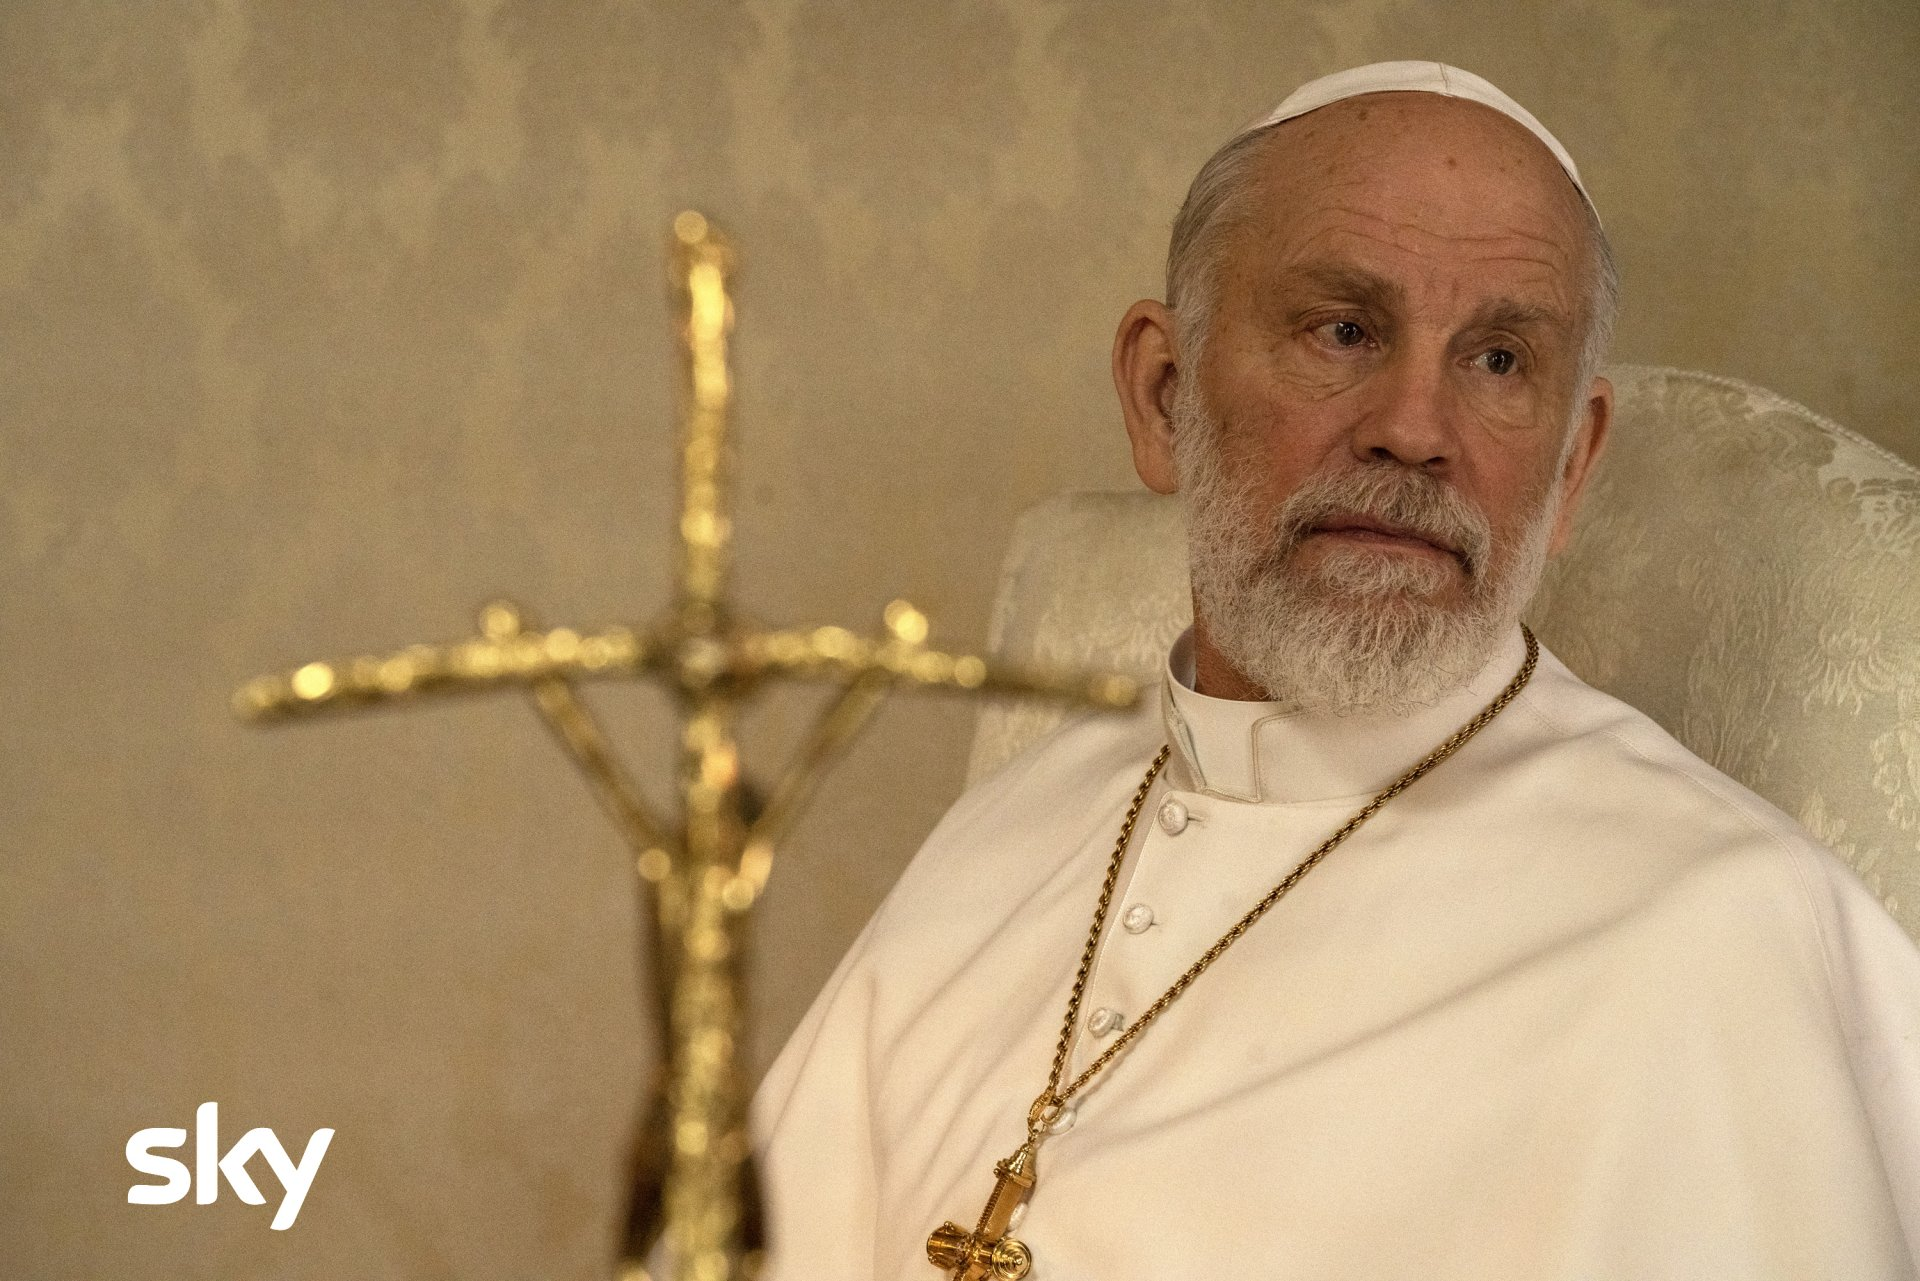 The New Pope, stasera terzo e quarto episodio su Sky (in 4K HDR) e NOW TV